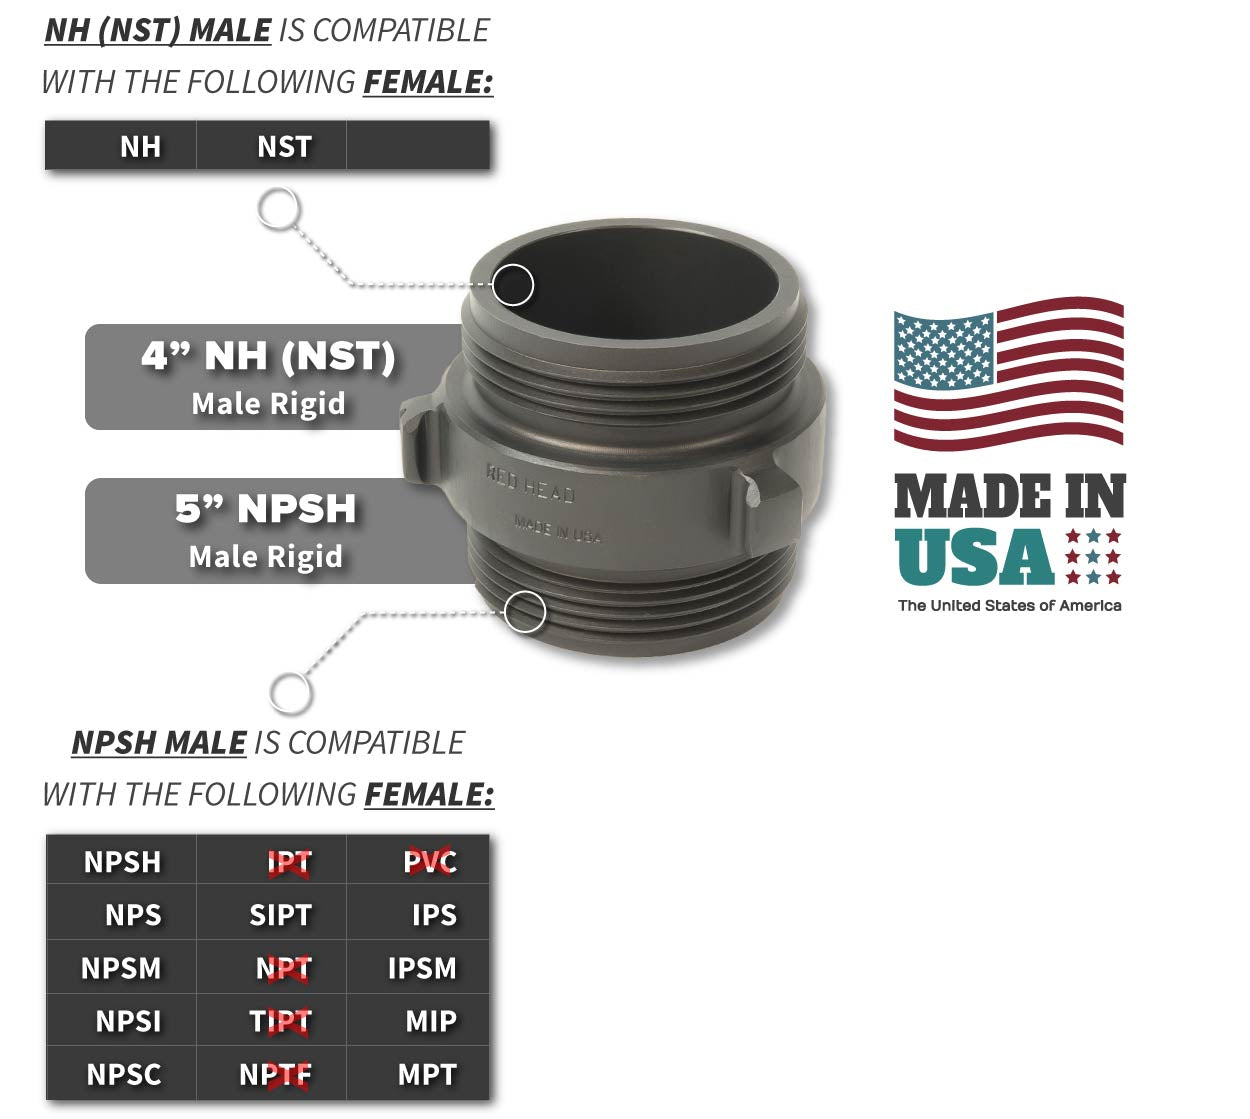 4 Inch NH-NST Male x 5 Inch NPSH Male Compatibility Thread Chart